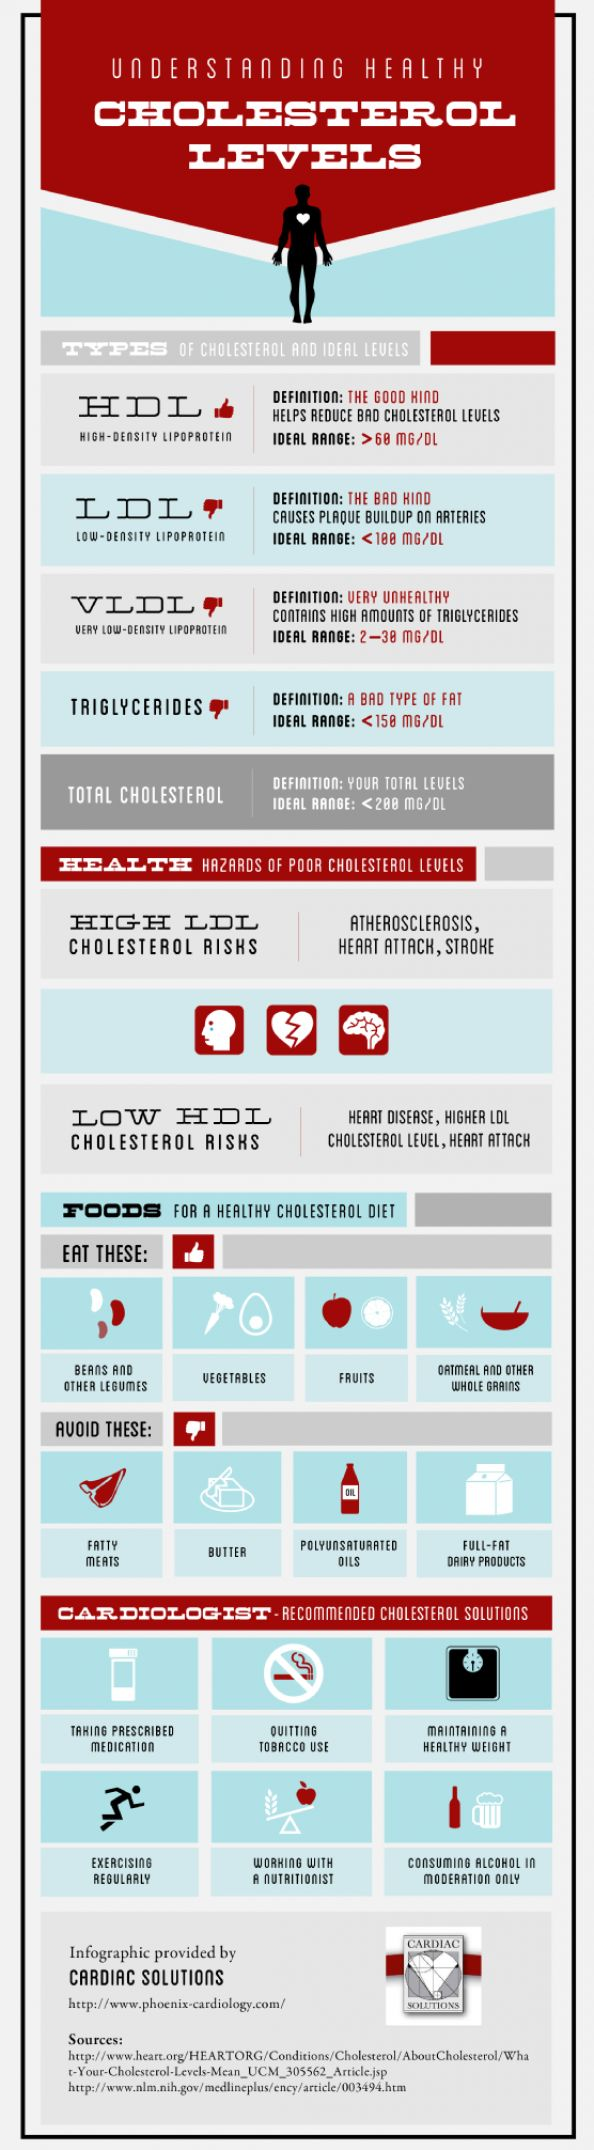 Take a look at our first piece of information for this years National Cholesterol Week... Understanding Healthy Cholesterol Levels